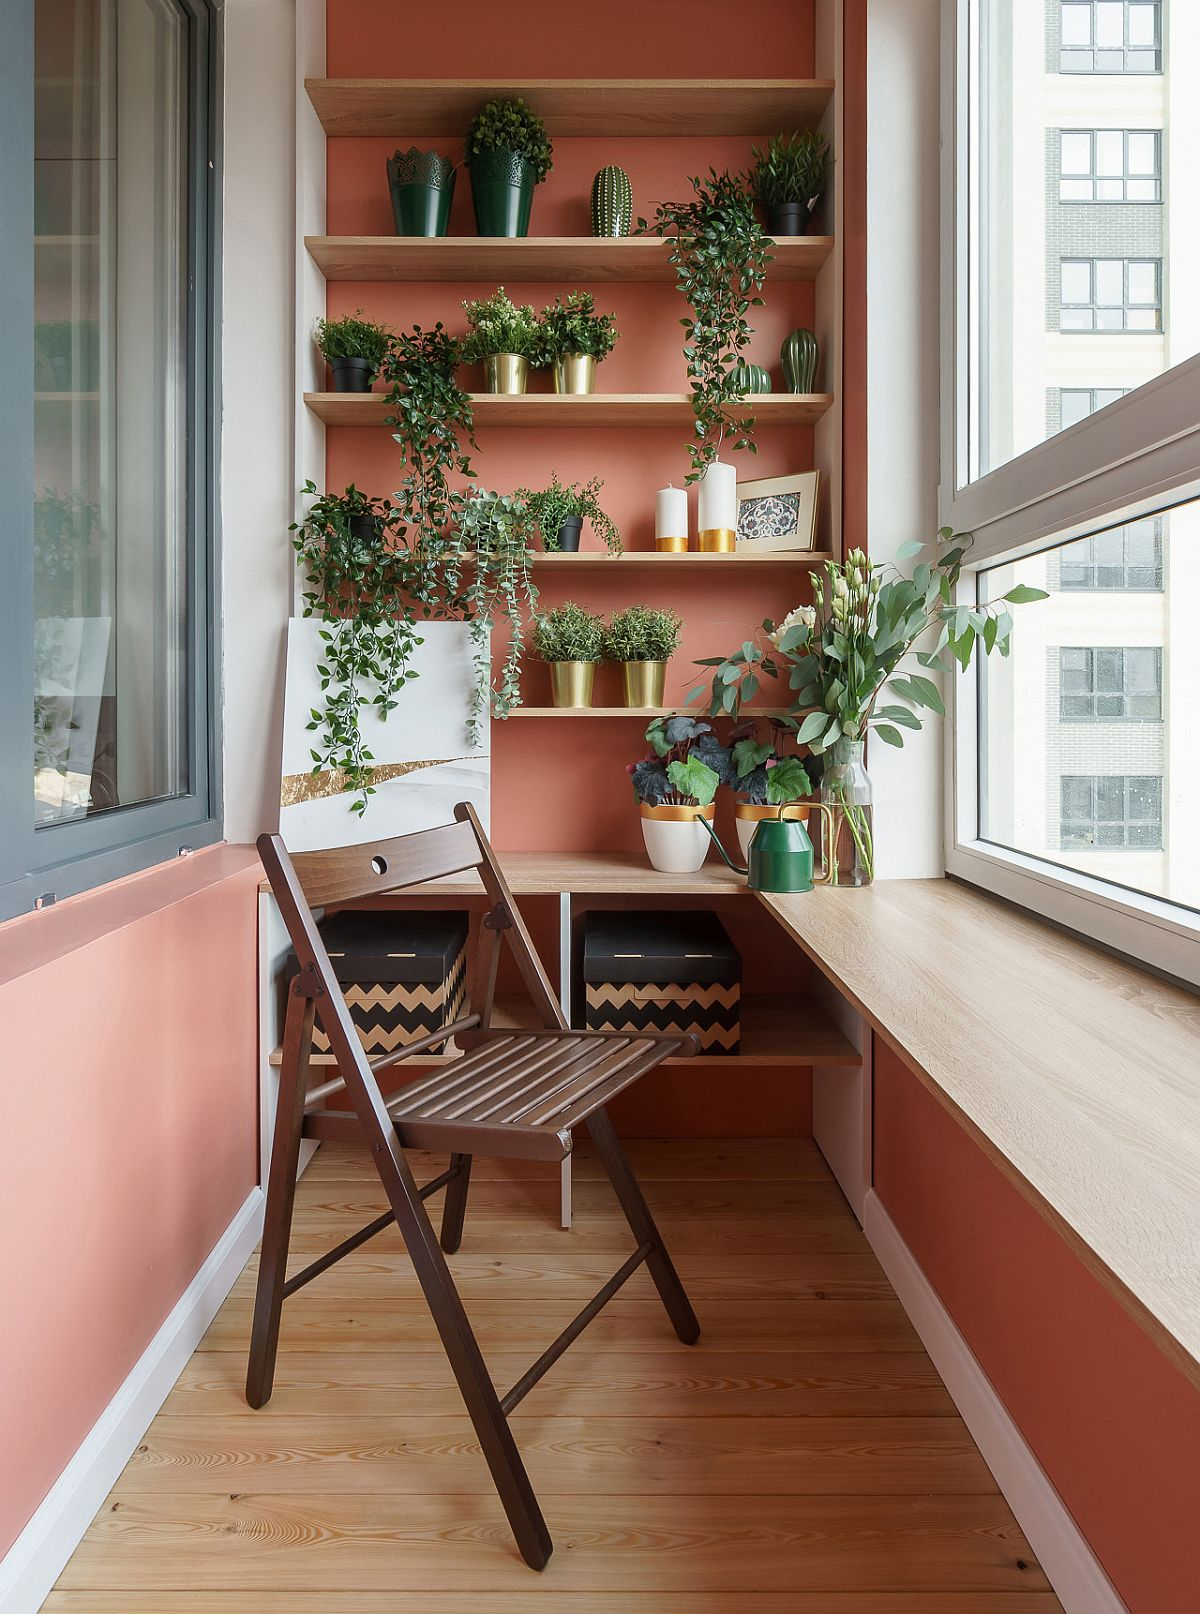 Small-contemporary-sunroom-of-Russian-home-with-pink-walls-and-a-smart-stand-to-hold-potted-plants-58155